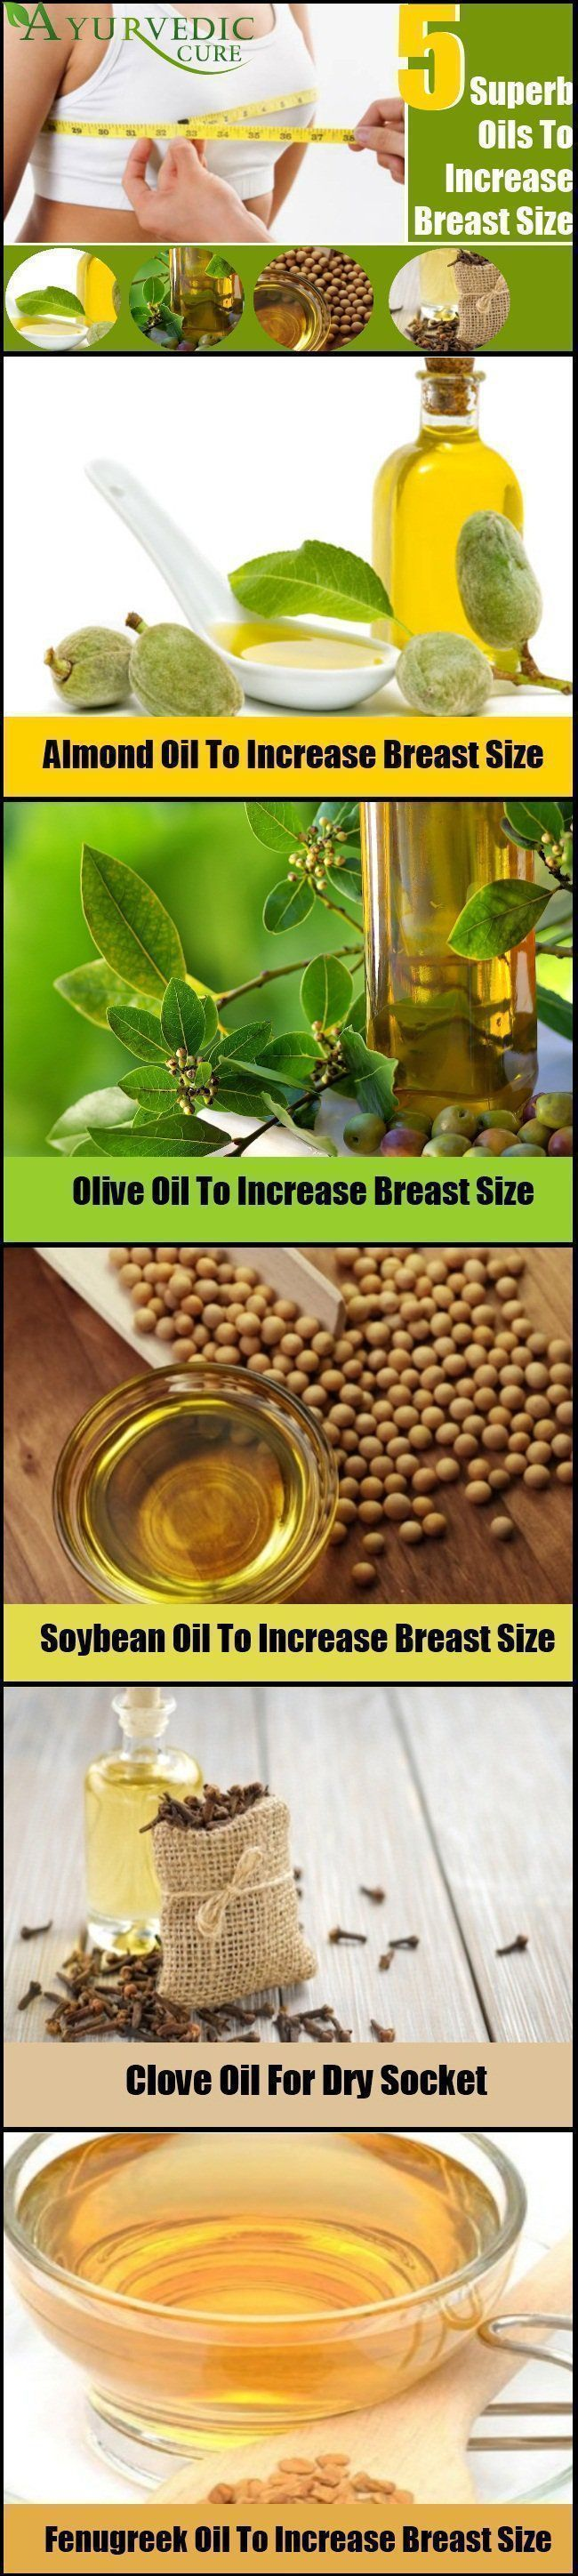 Increase Breast Size http://womensbust.com/breast-enlargement-supplements/red-clover-breast-enlargement-review/ ... For a noticeable, measurable increase in the overall breast volume! ... For a noticeable, measurable increase in the overall breast volume! http://womensbusts.com/best-breast-enhancement-products/